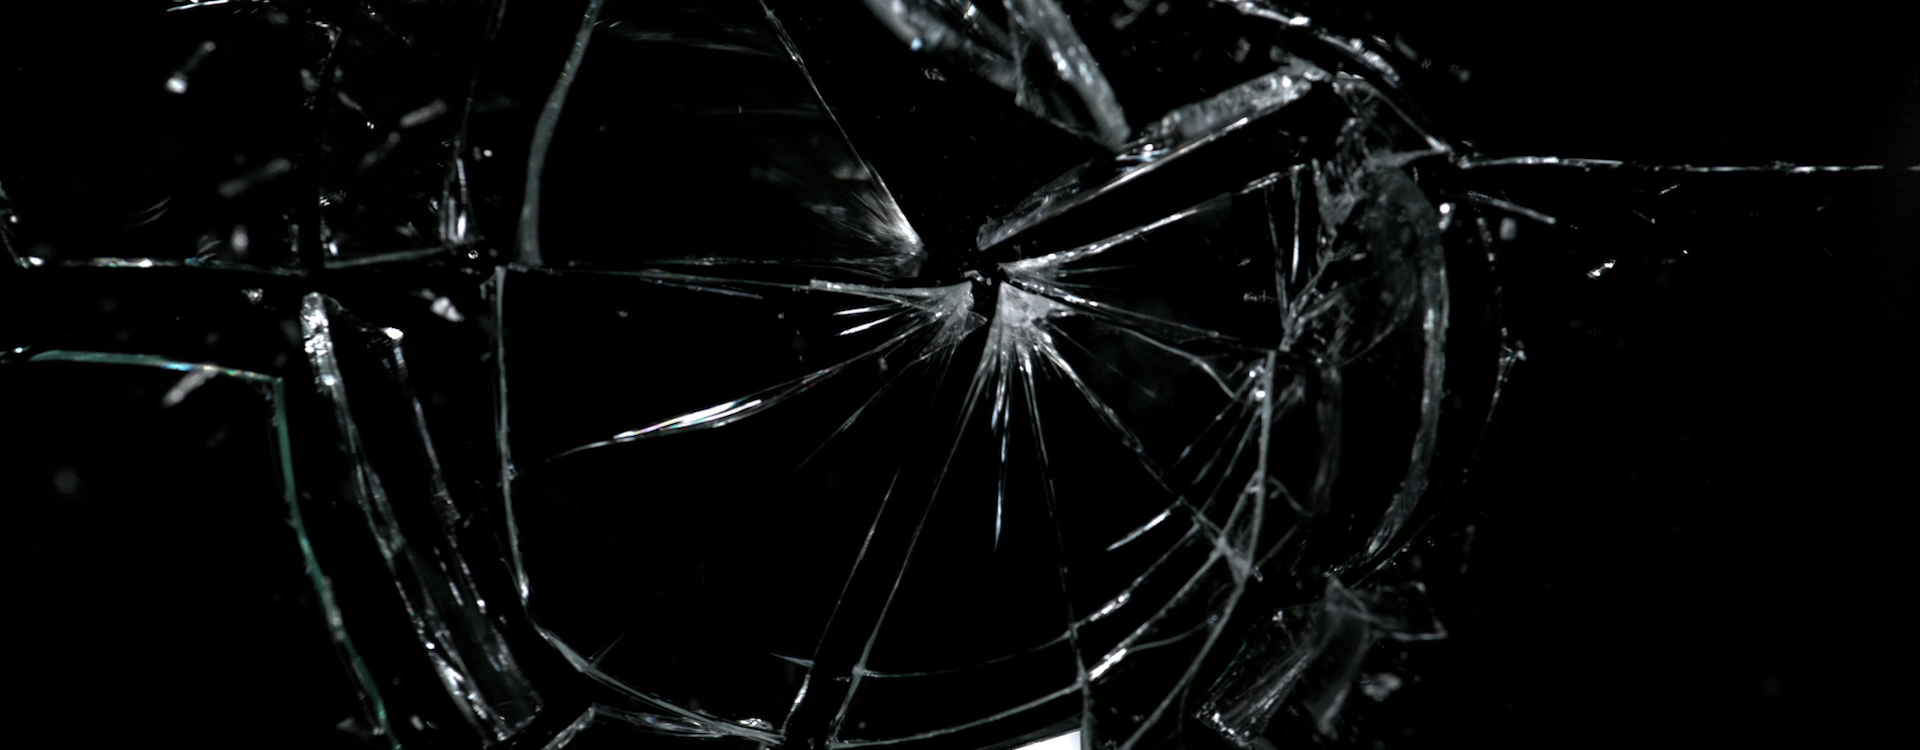 black_mirror_header